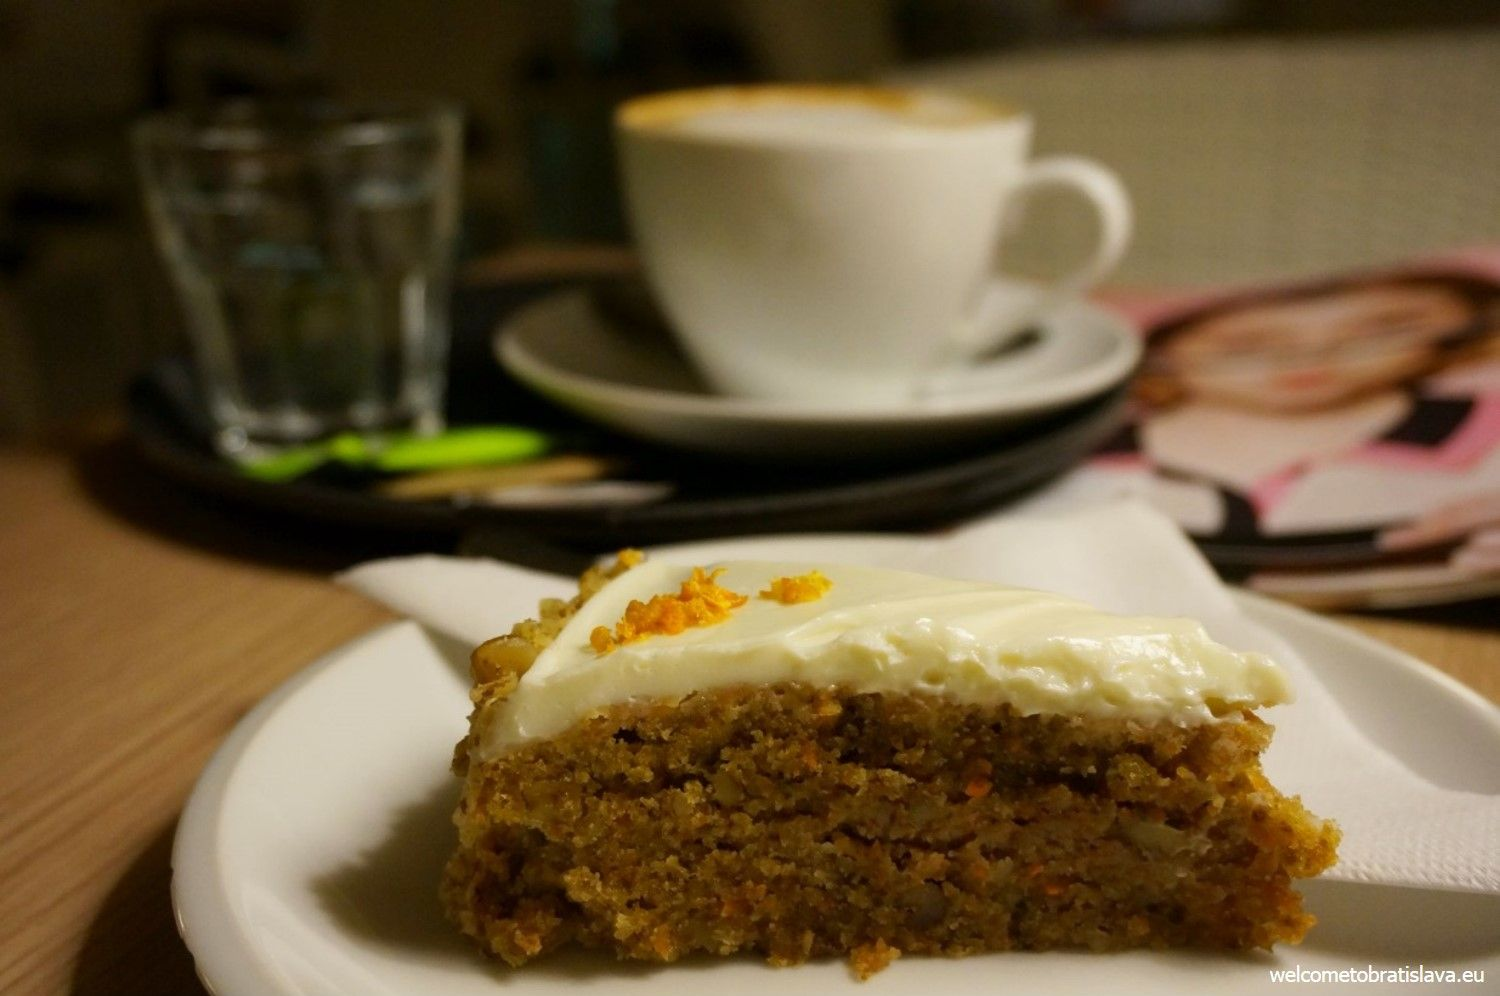 Their carrot cake with lemon icing is fabulous!